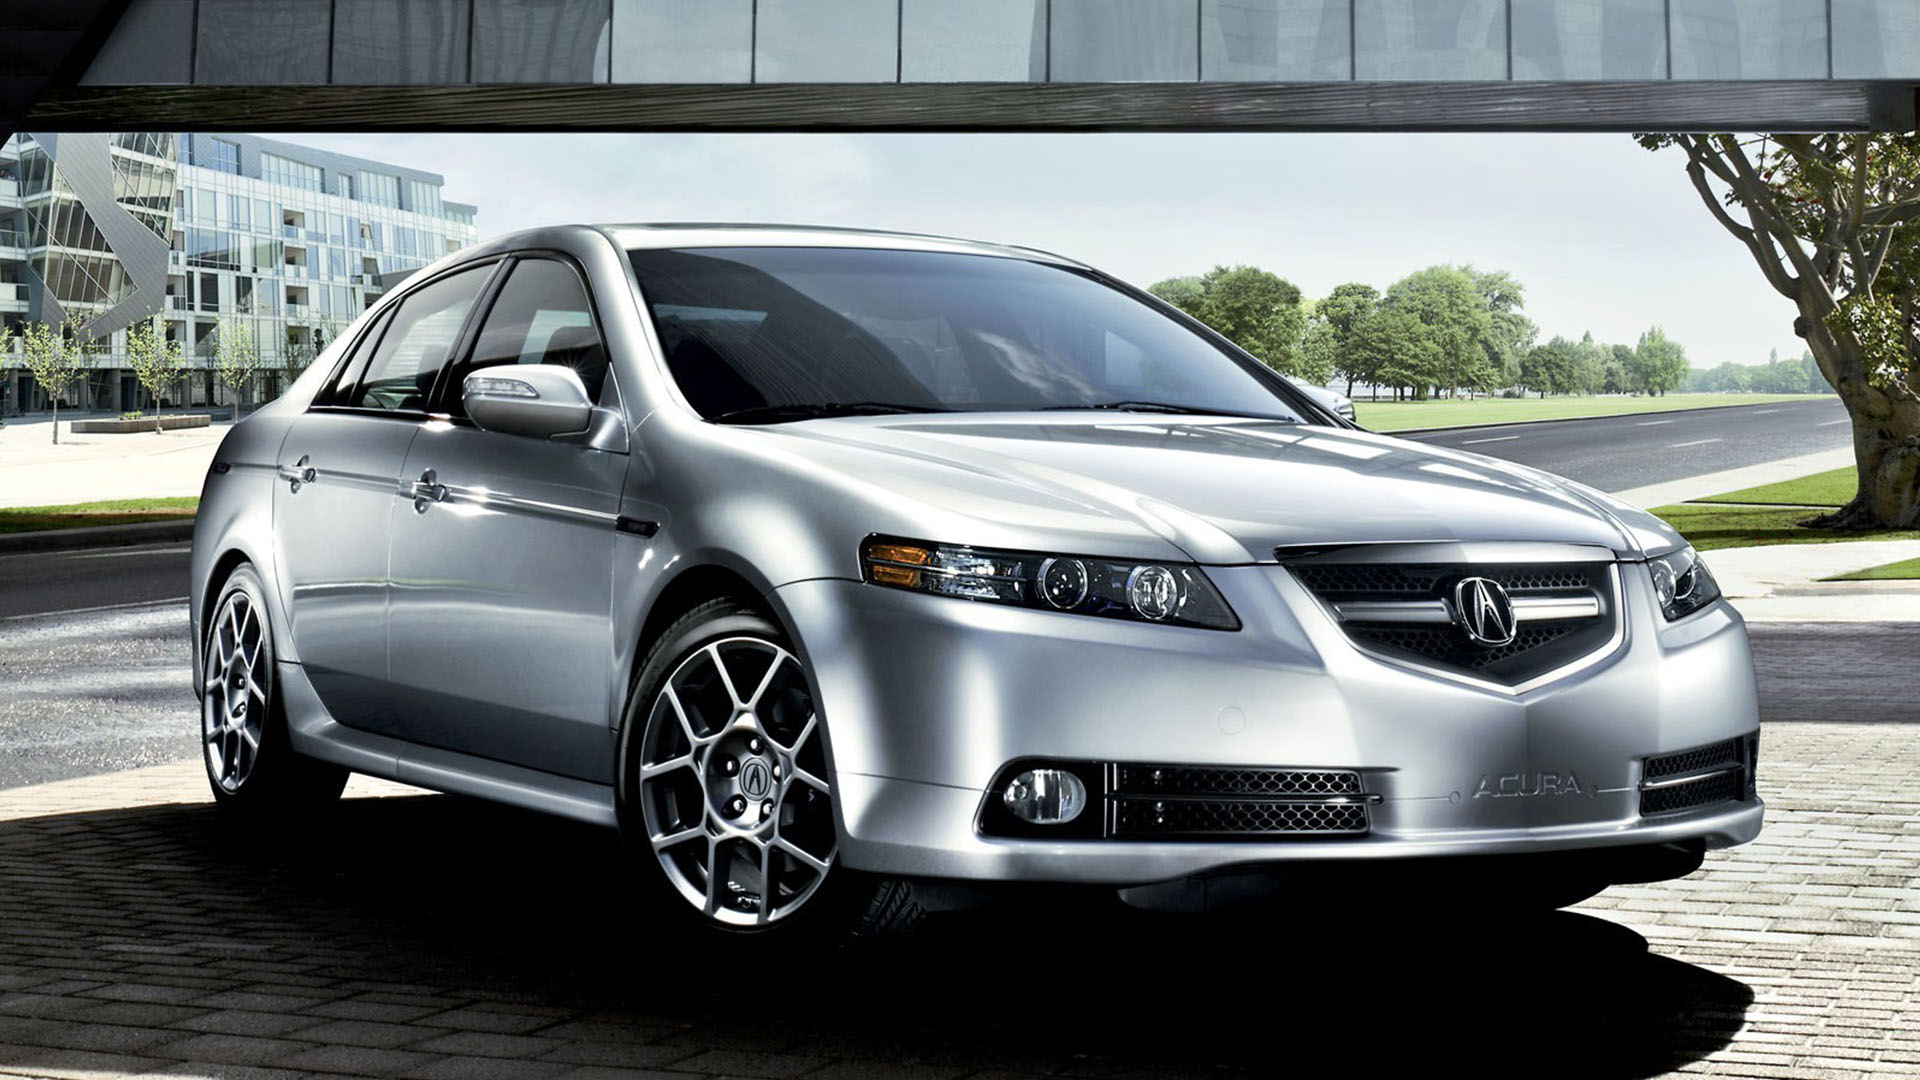 Acura Tl 2015 For Sale >> Underrated Ride Of The Week: 2007/2008 Acura TL Type S - The AutoTempest Blog